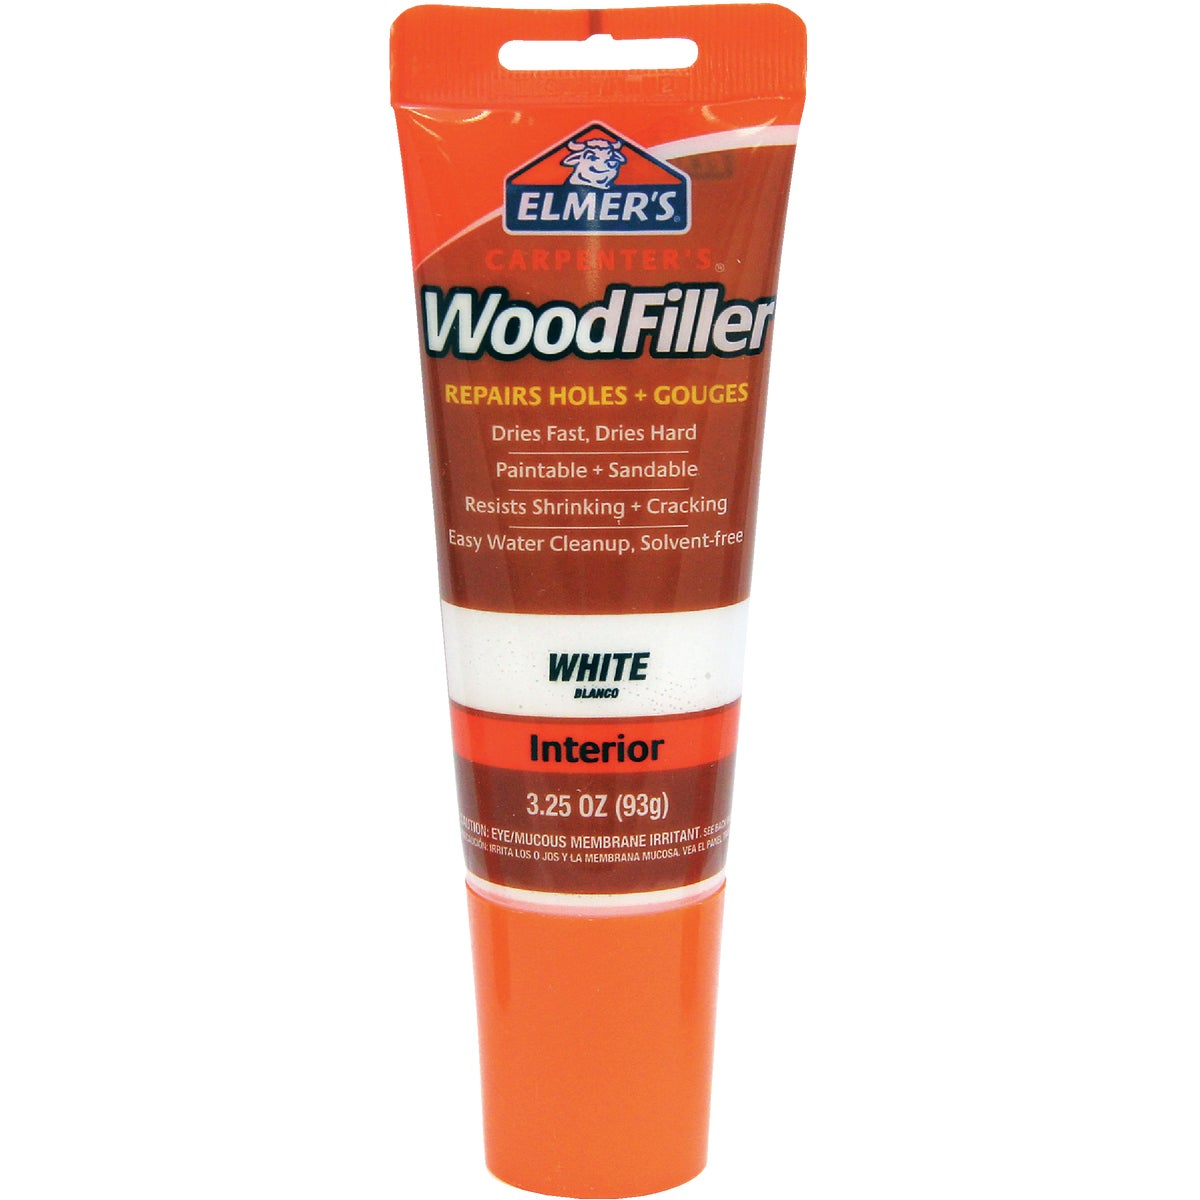 3.25OZ WHITE WOOD FILLER